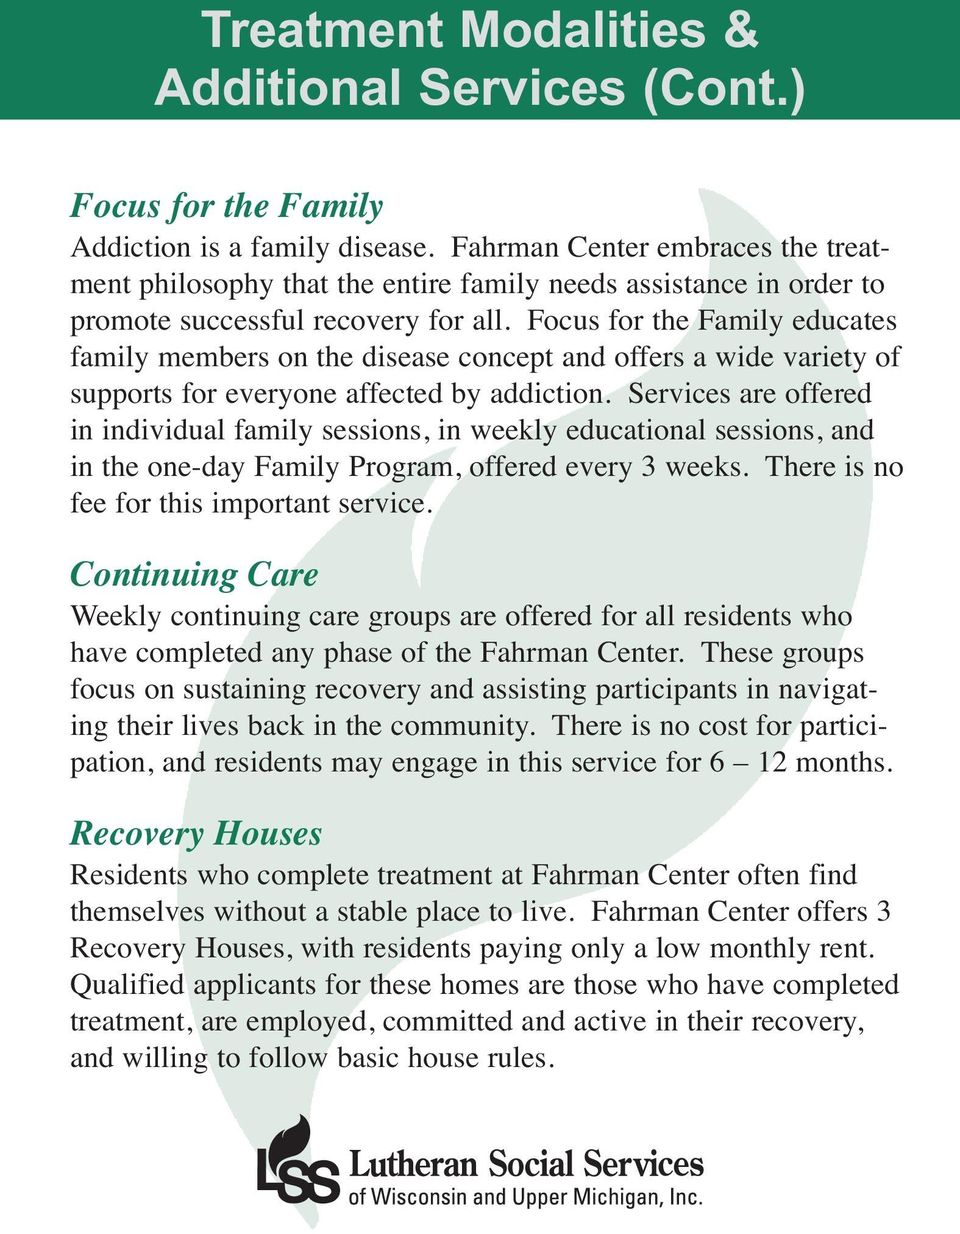 Focus for the Family educates family members on the disease concept and offers a wide variety of supports for everyone affected by addiction.